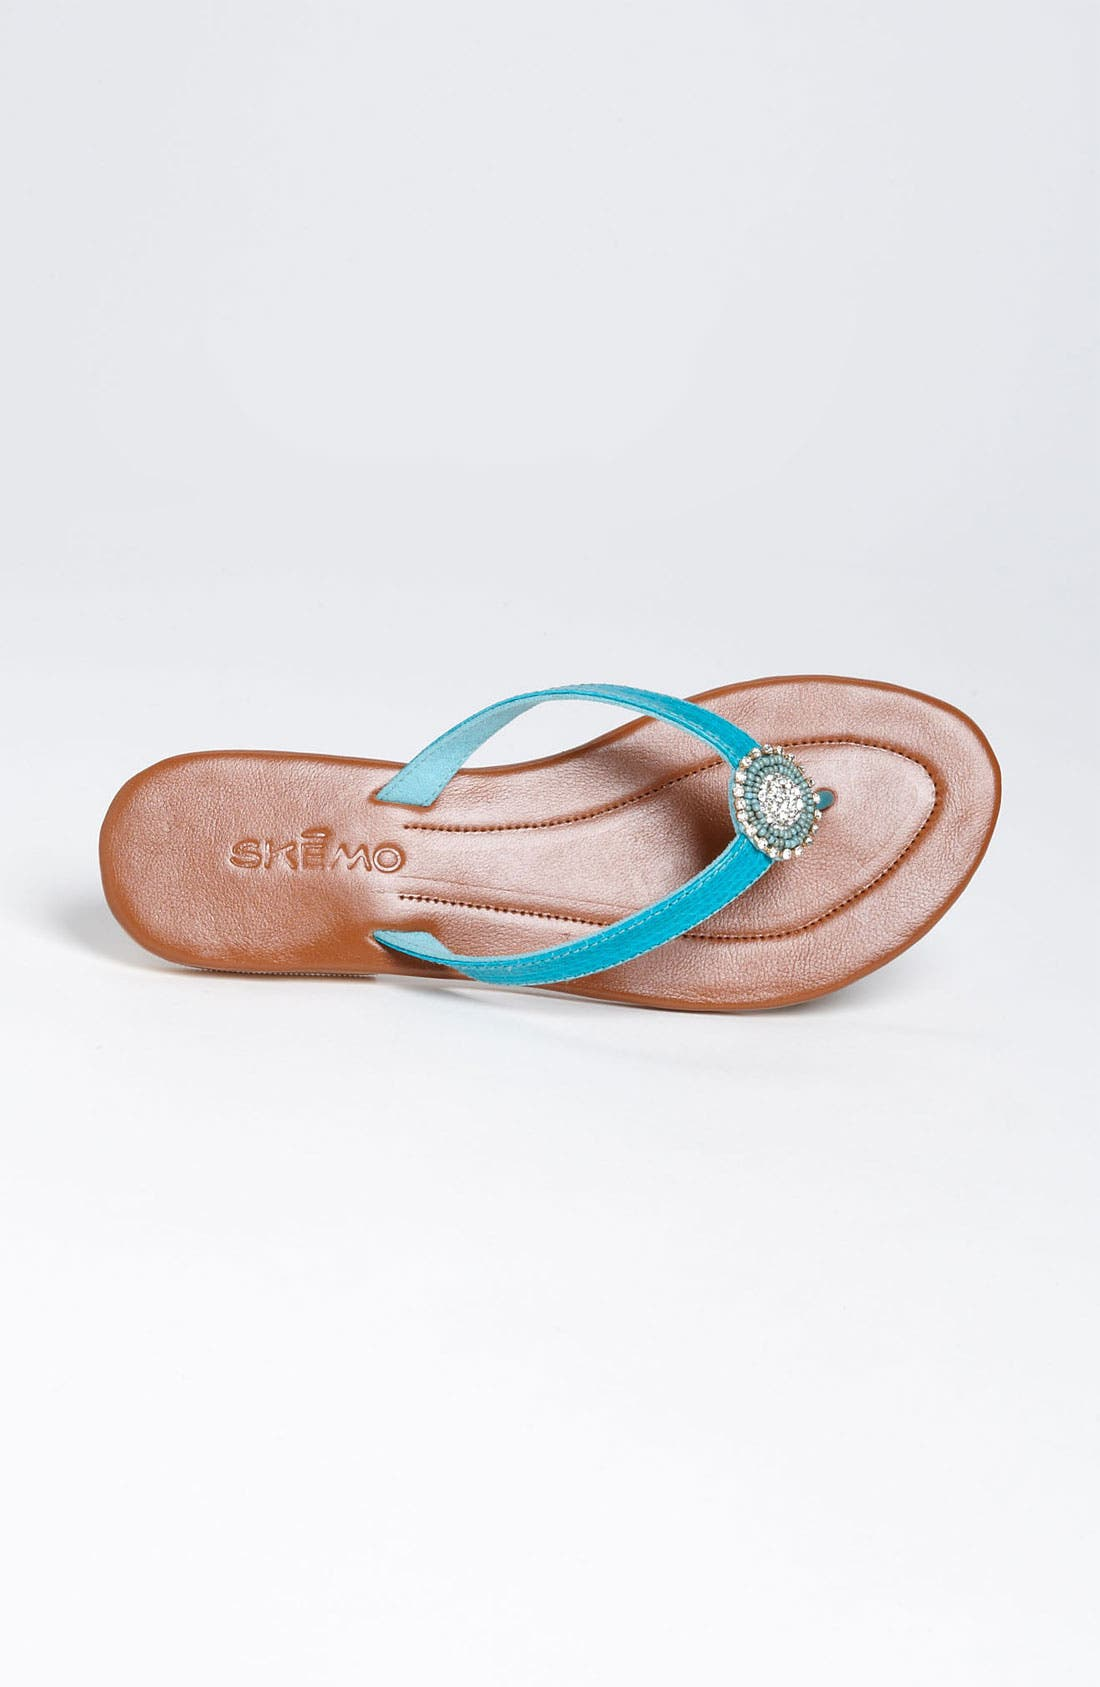 Alternate Image 3  - Skemo 'Vela' Sandal